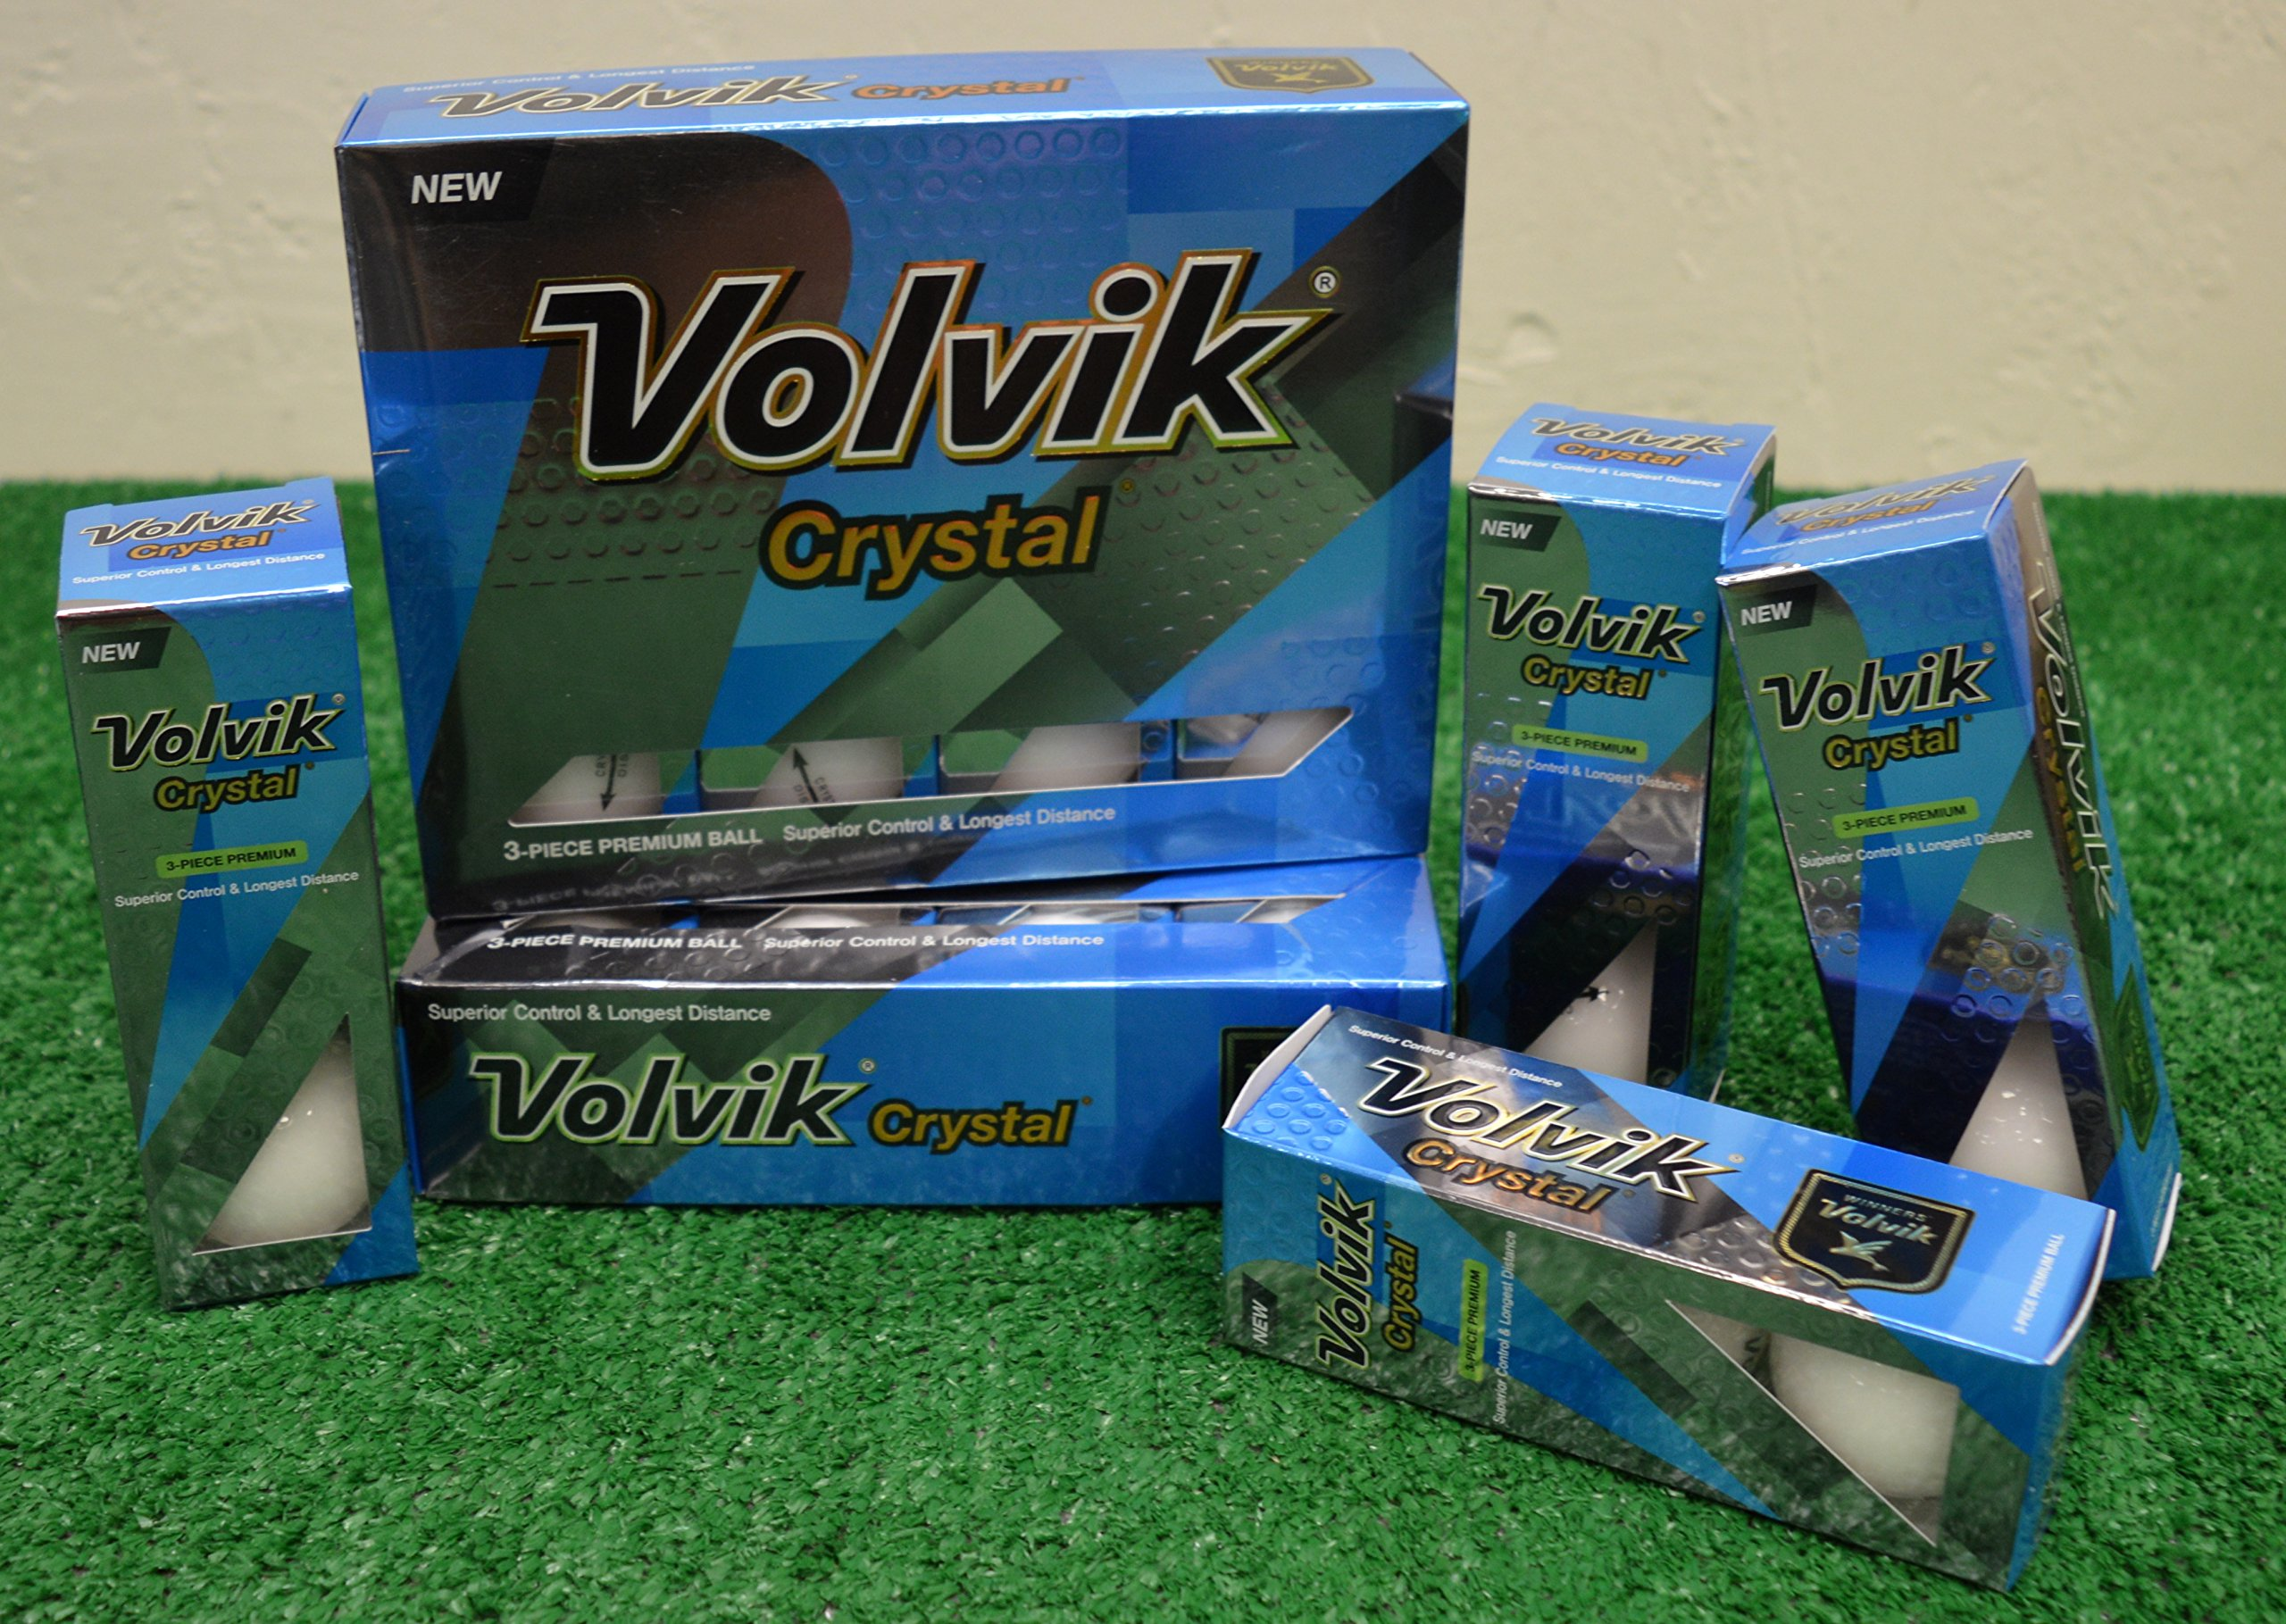 3 Dozen Volvik Crystal White Golf Balls - New in Box